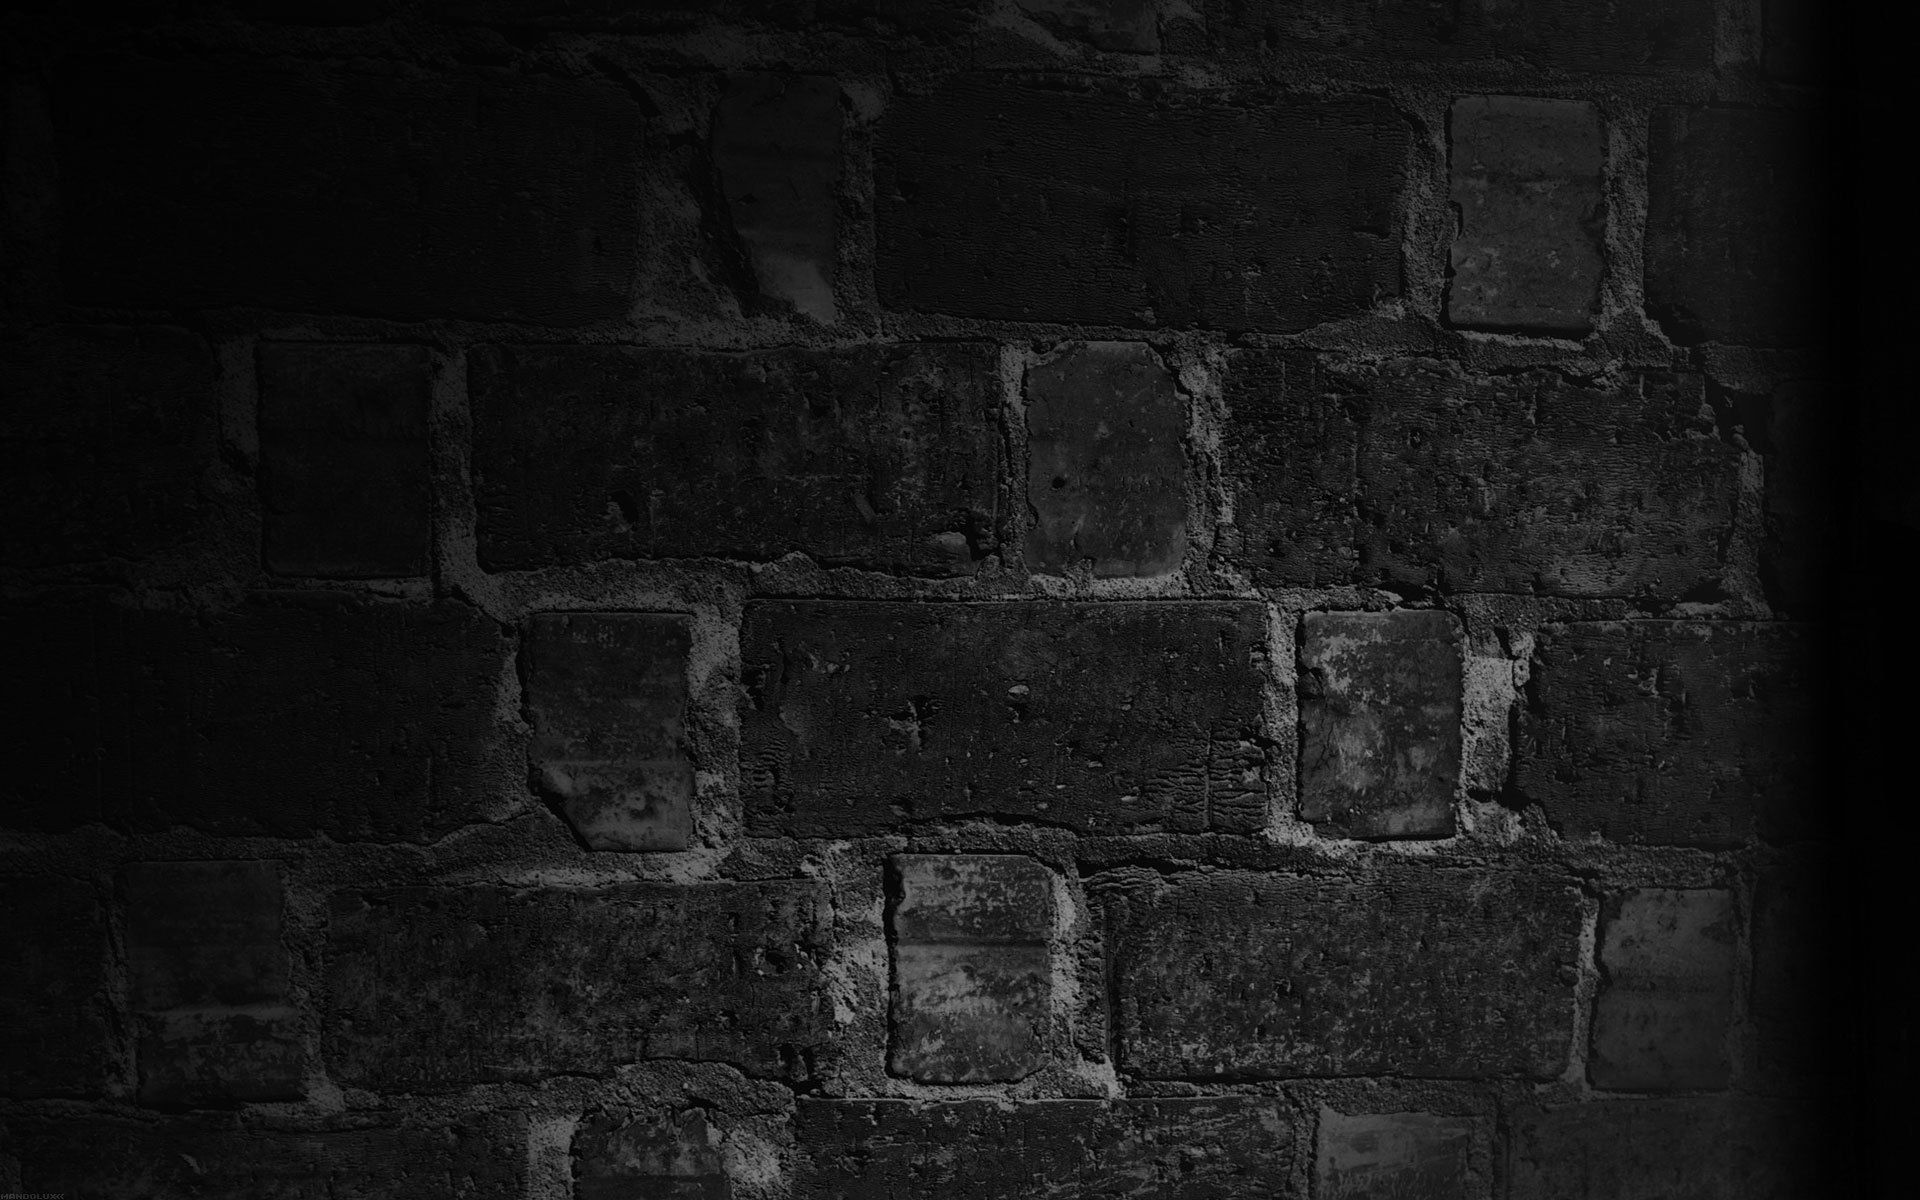 142984 download wallpaper Texture, Textures, Shadow, Wall, Bw, Chb, Bricks screensavers and pictures for free